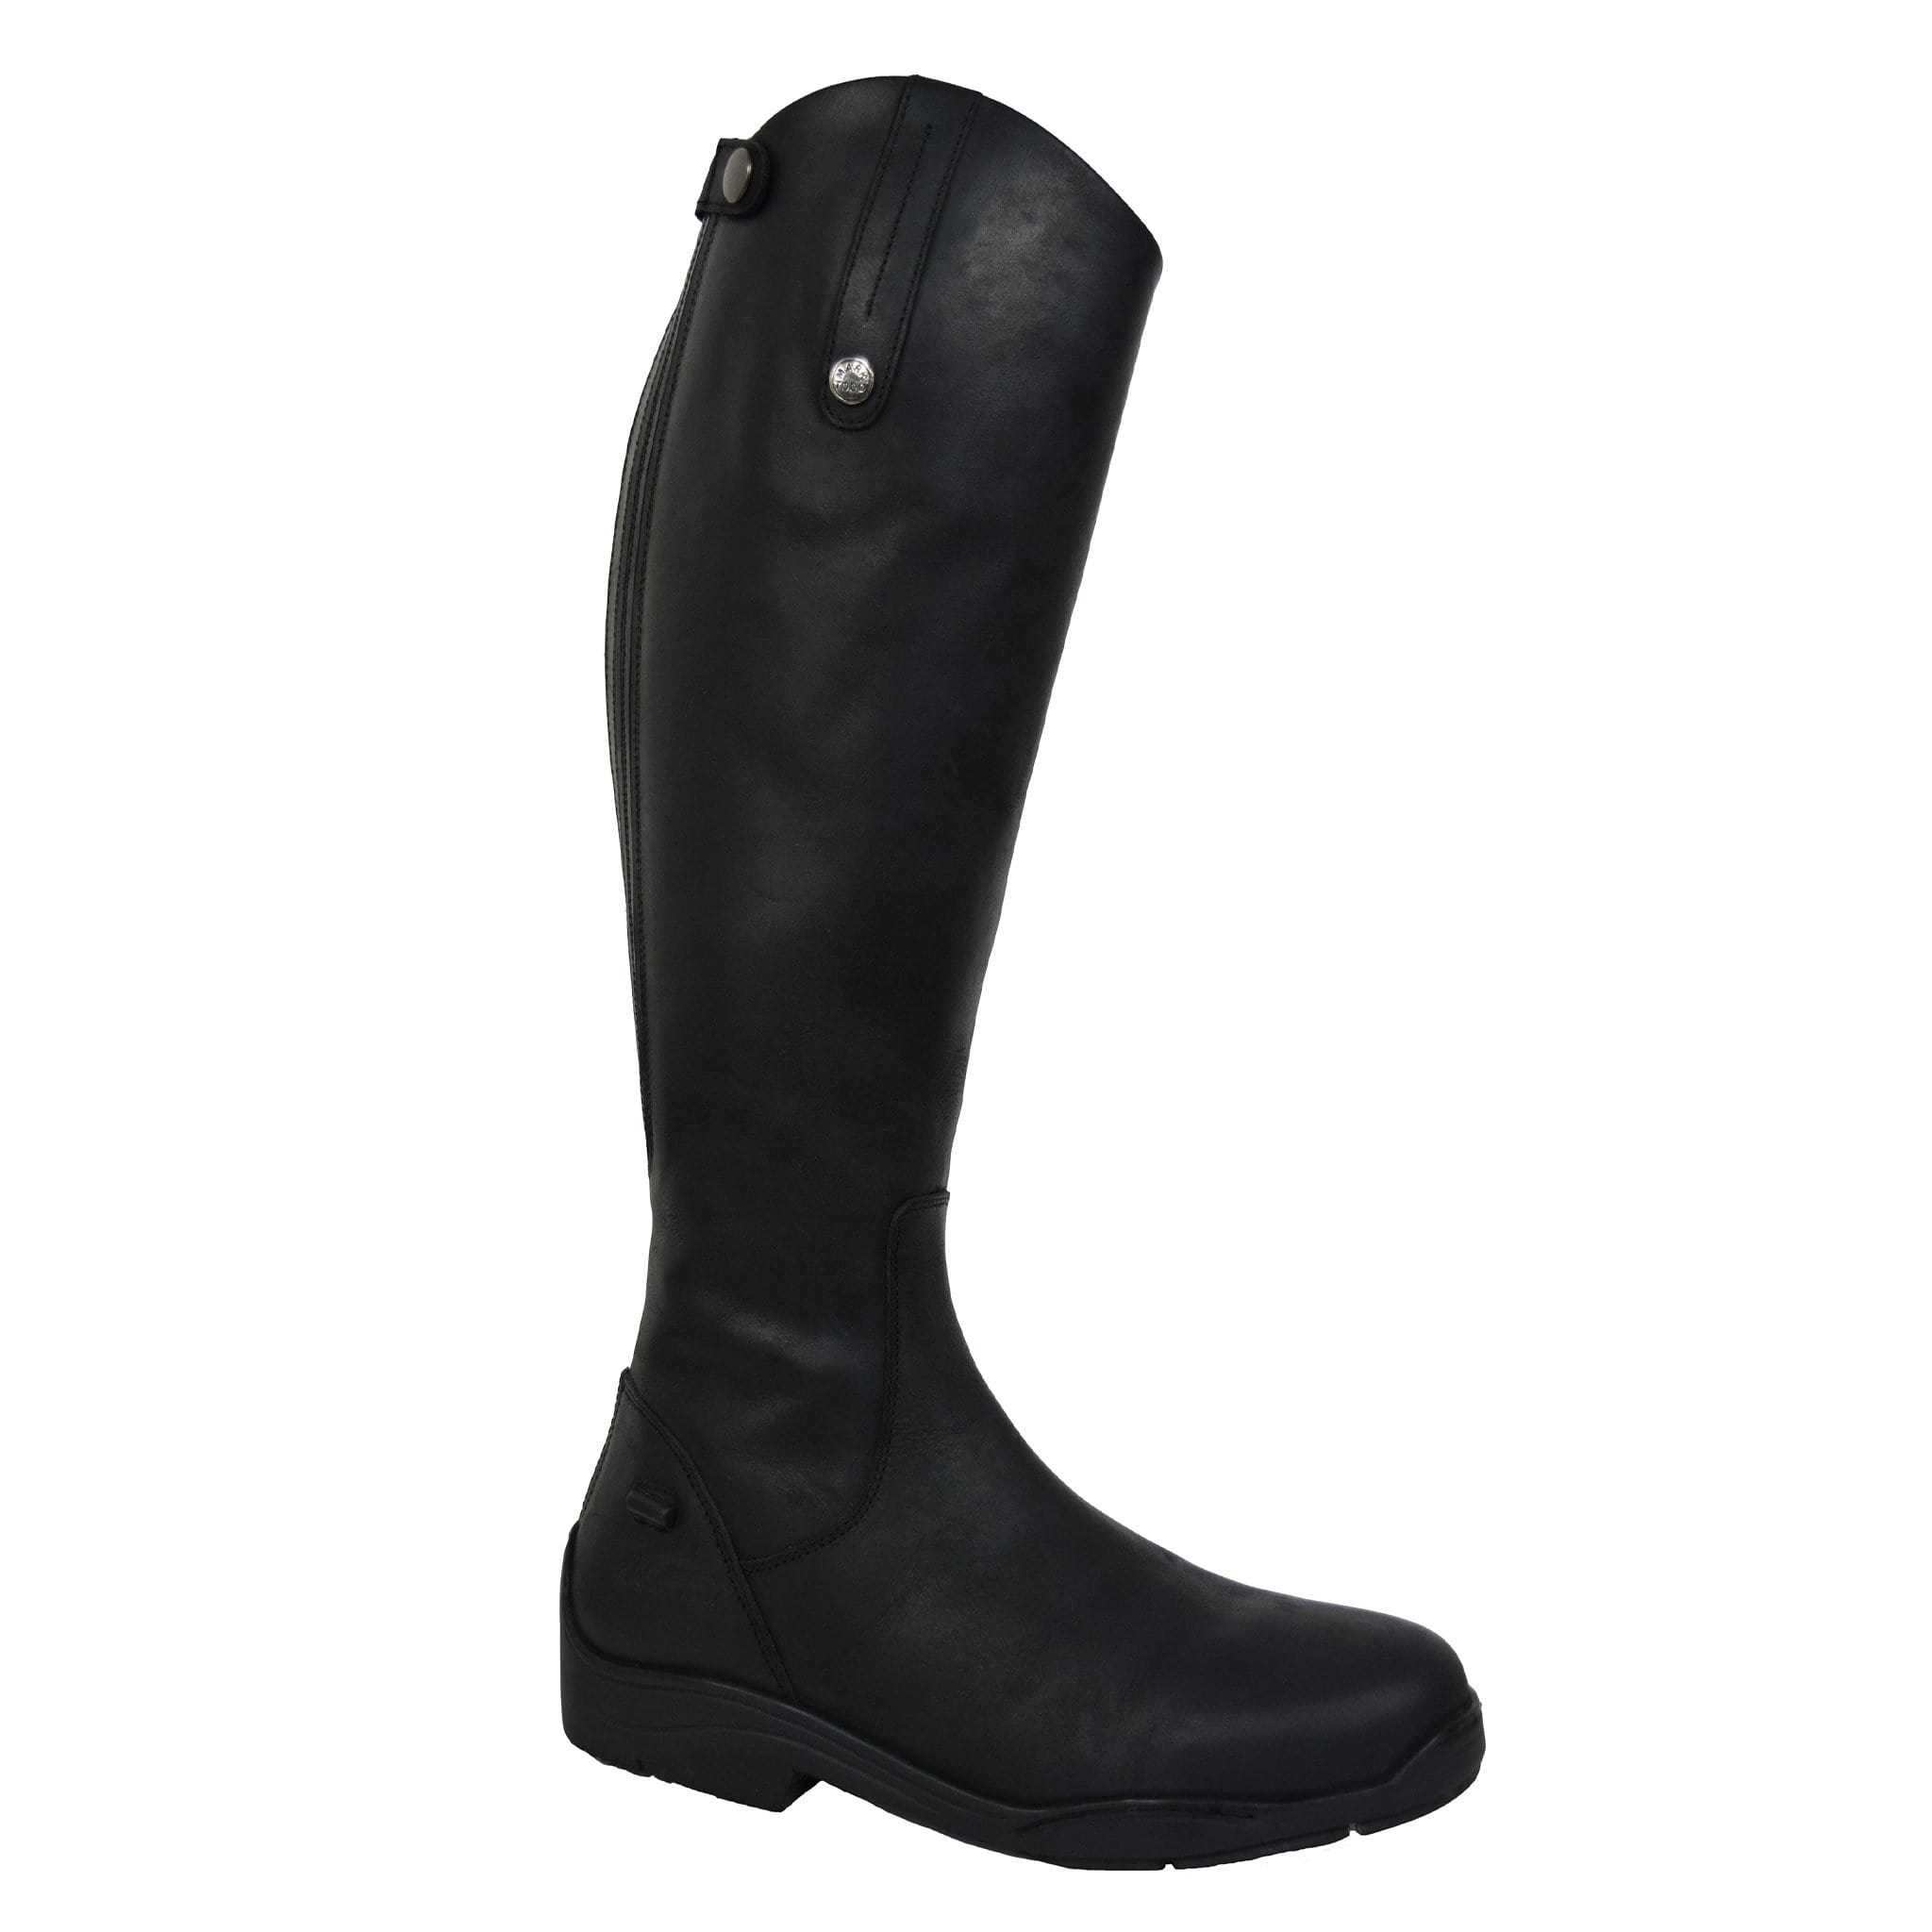 Mark Todd Children's Fleece Lined Tall Winter Riding Boots TOD890211 Black